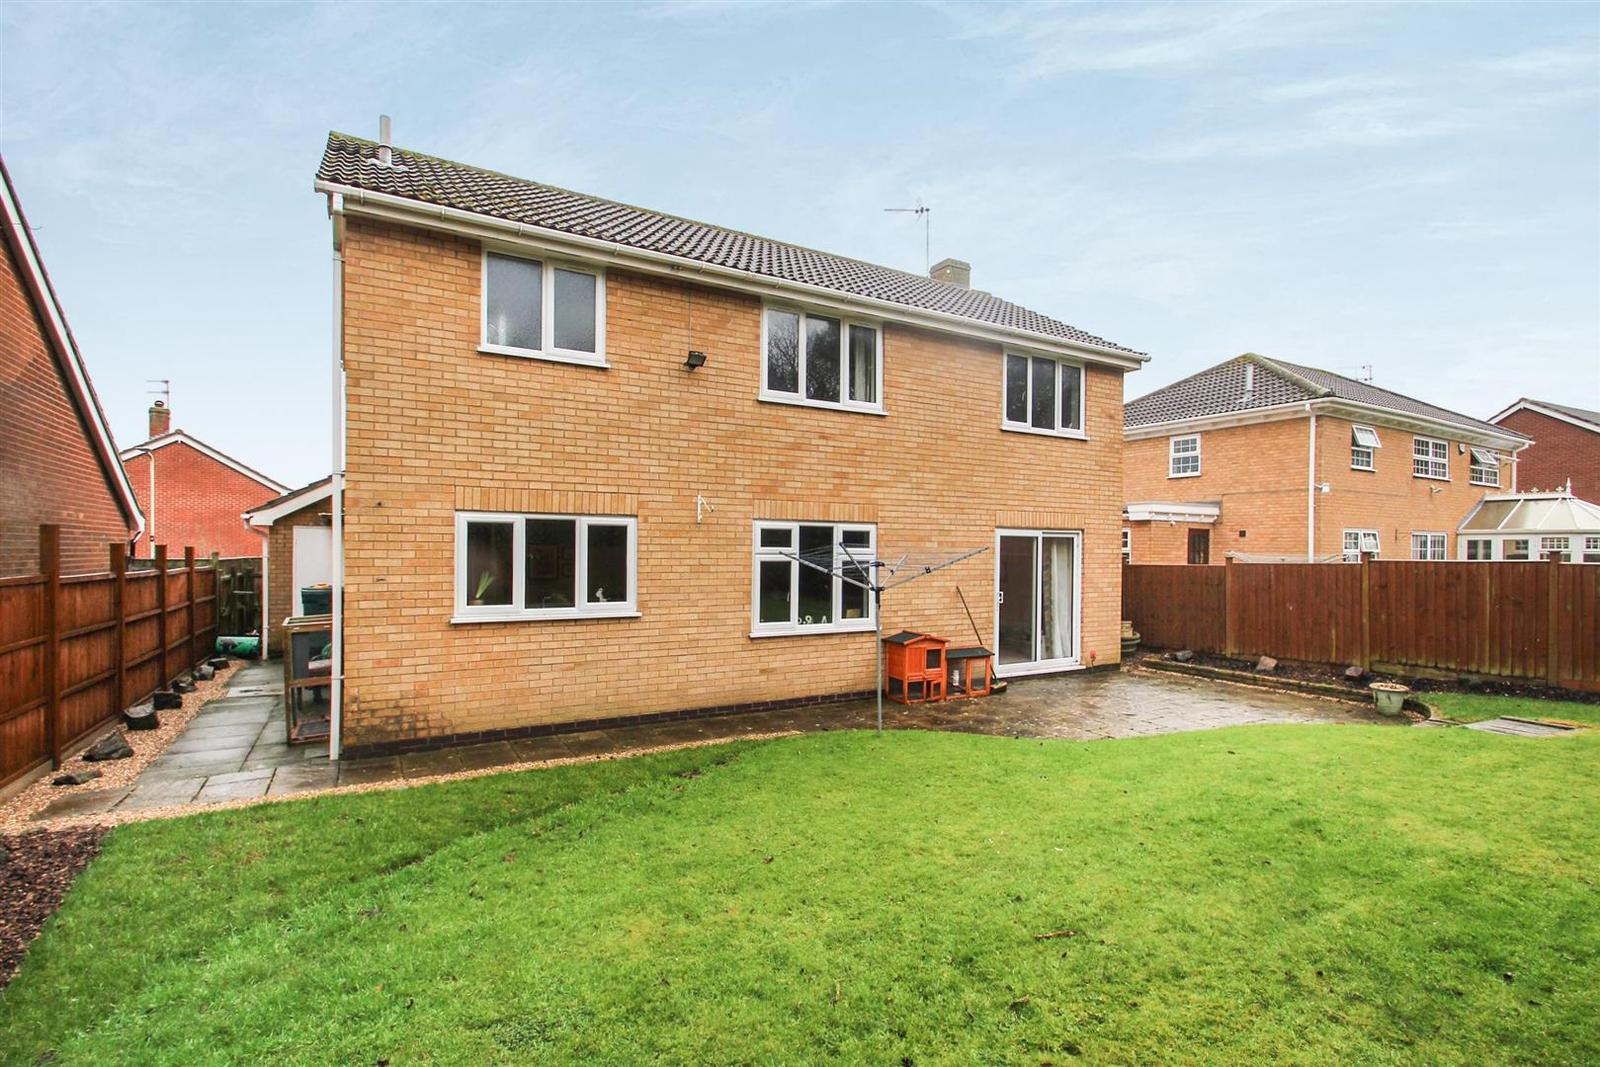 4 Bedrooms Property for sale in Cross Hedge, Rothley, Leicester